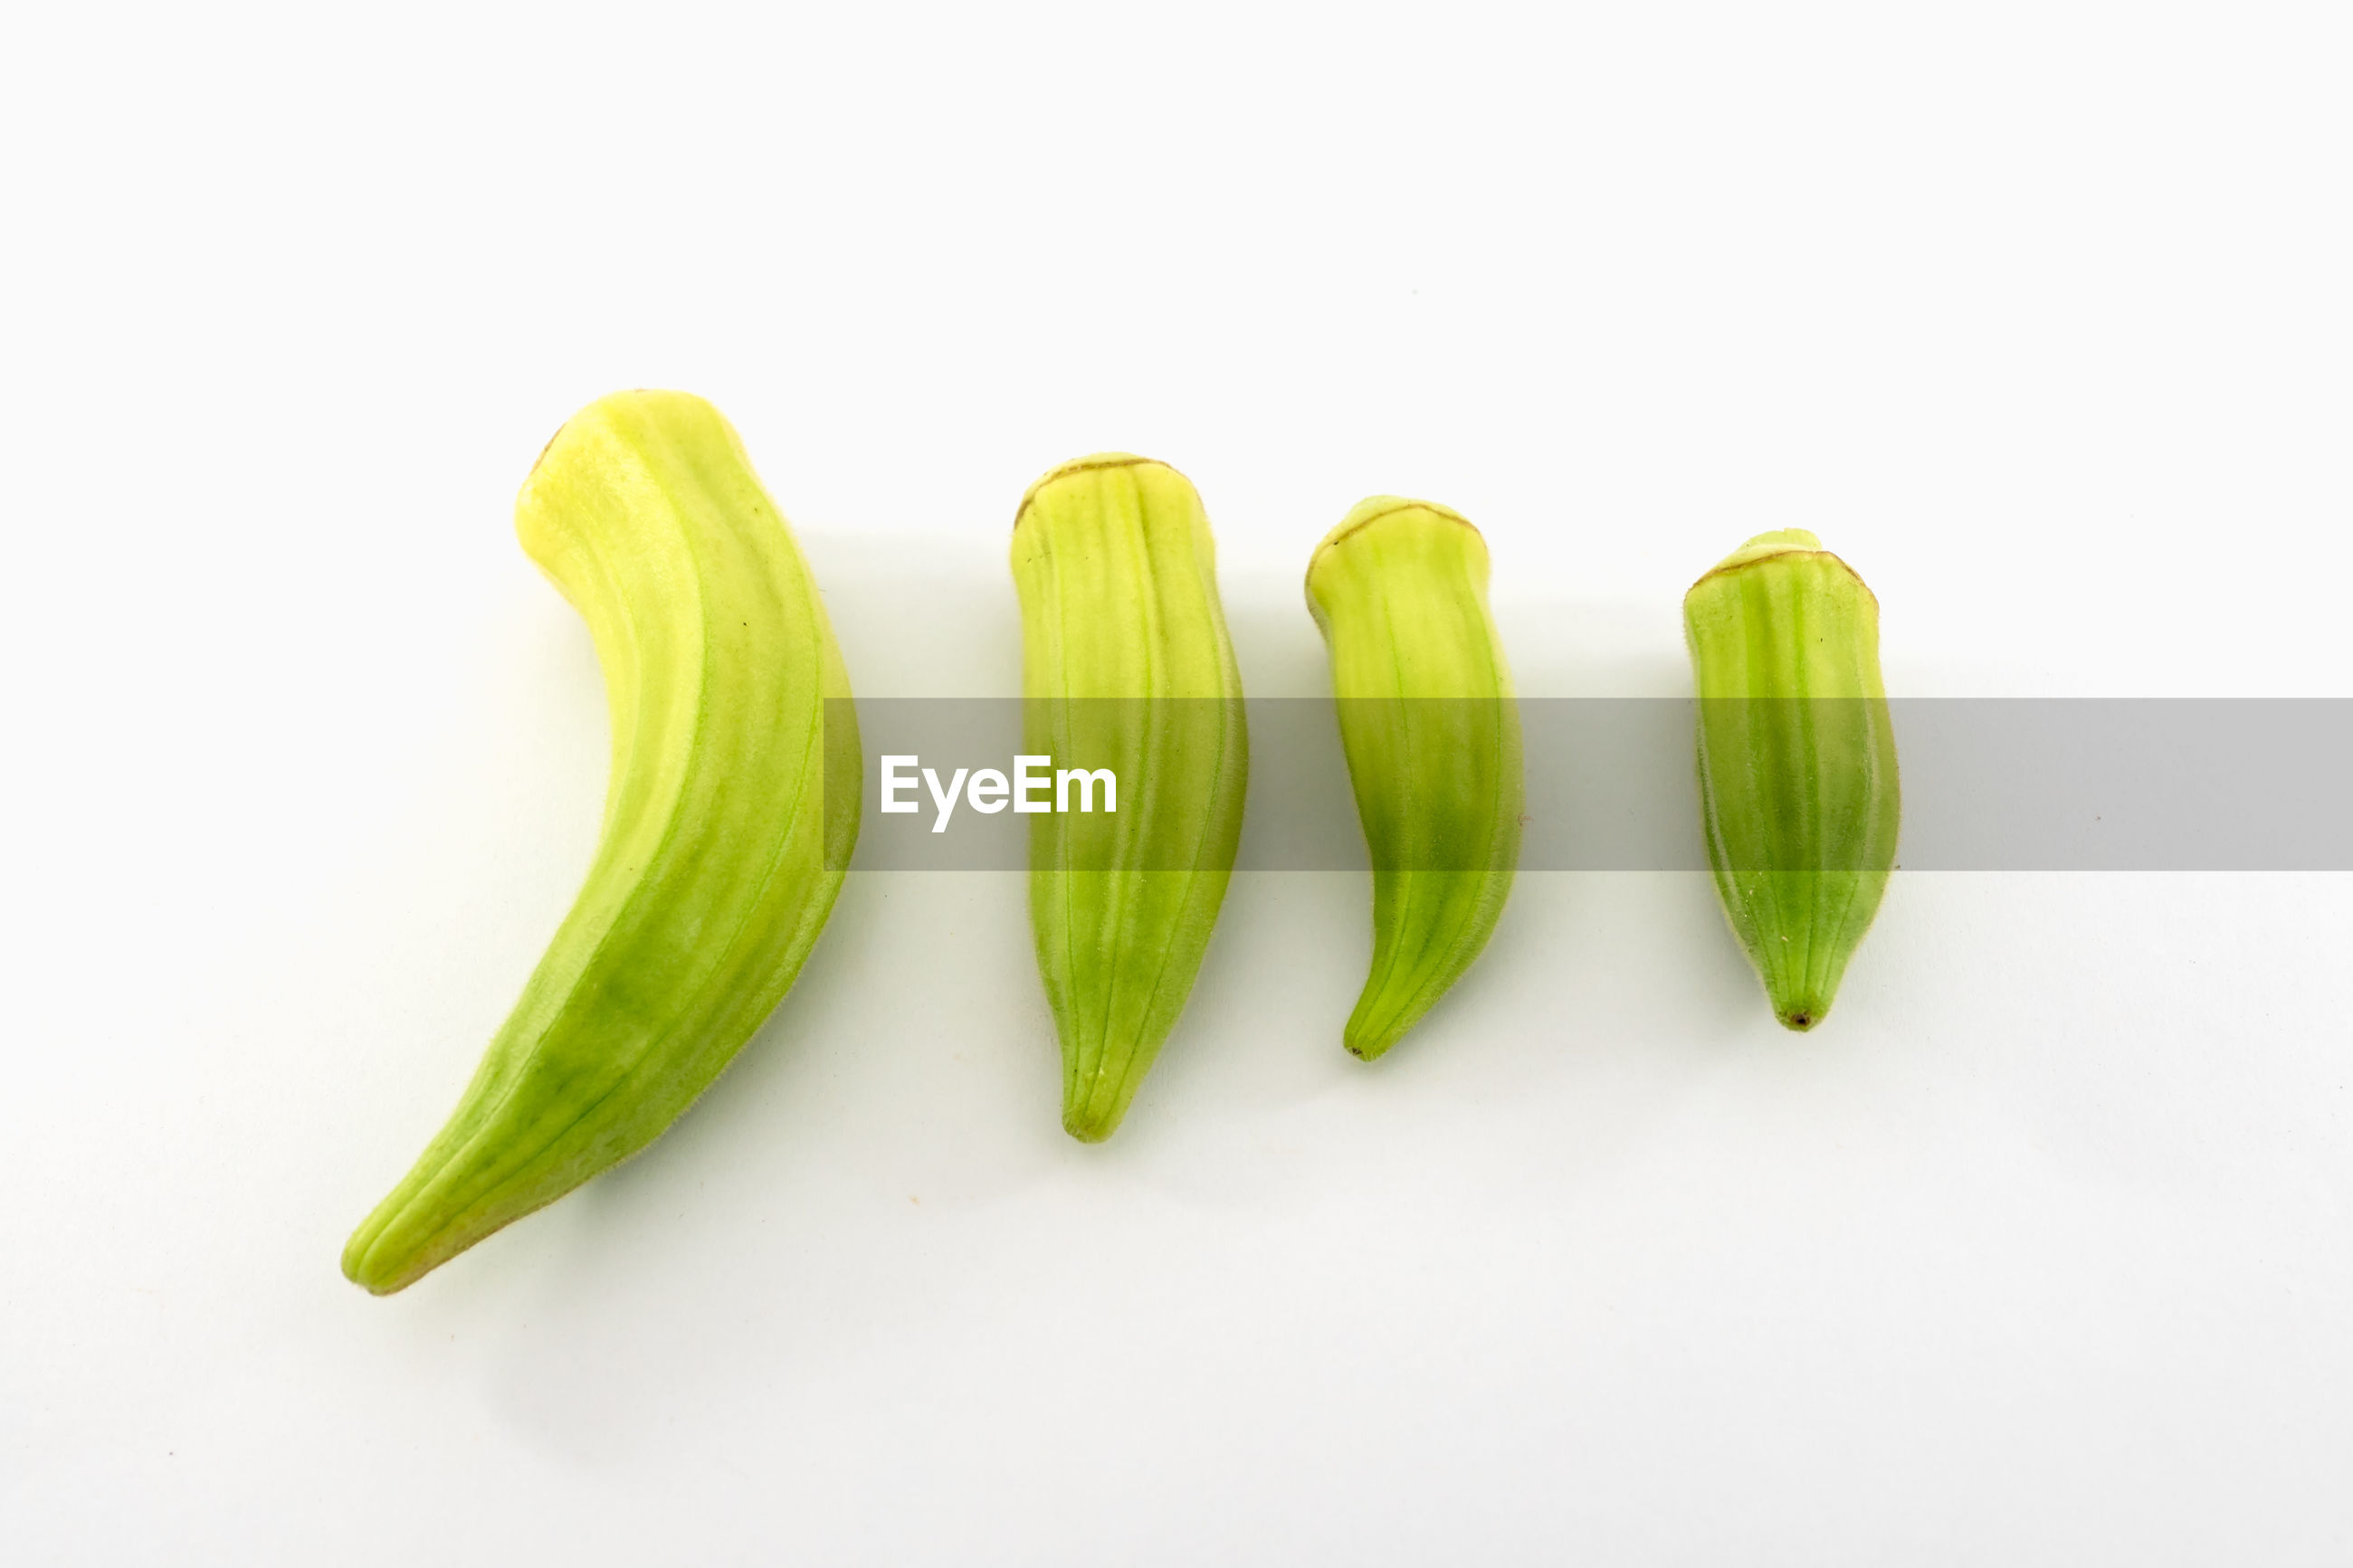 HIGH ANGLE VIEW OF GREEN CHILI PEPPER AGAINST WHITE BACKGROUND